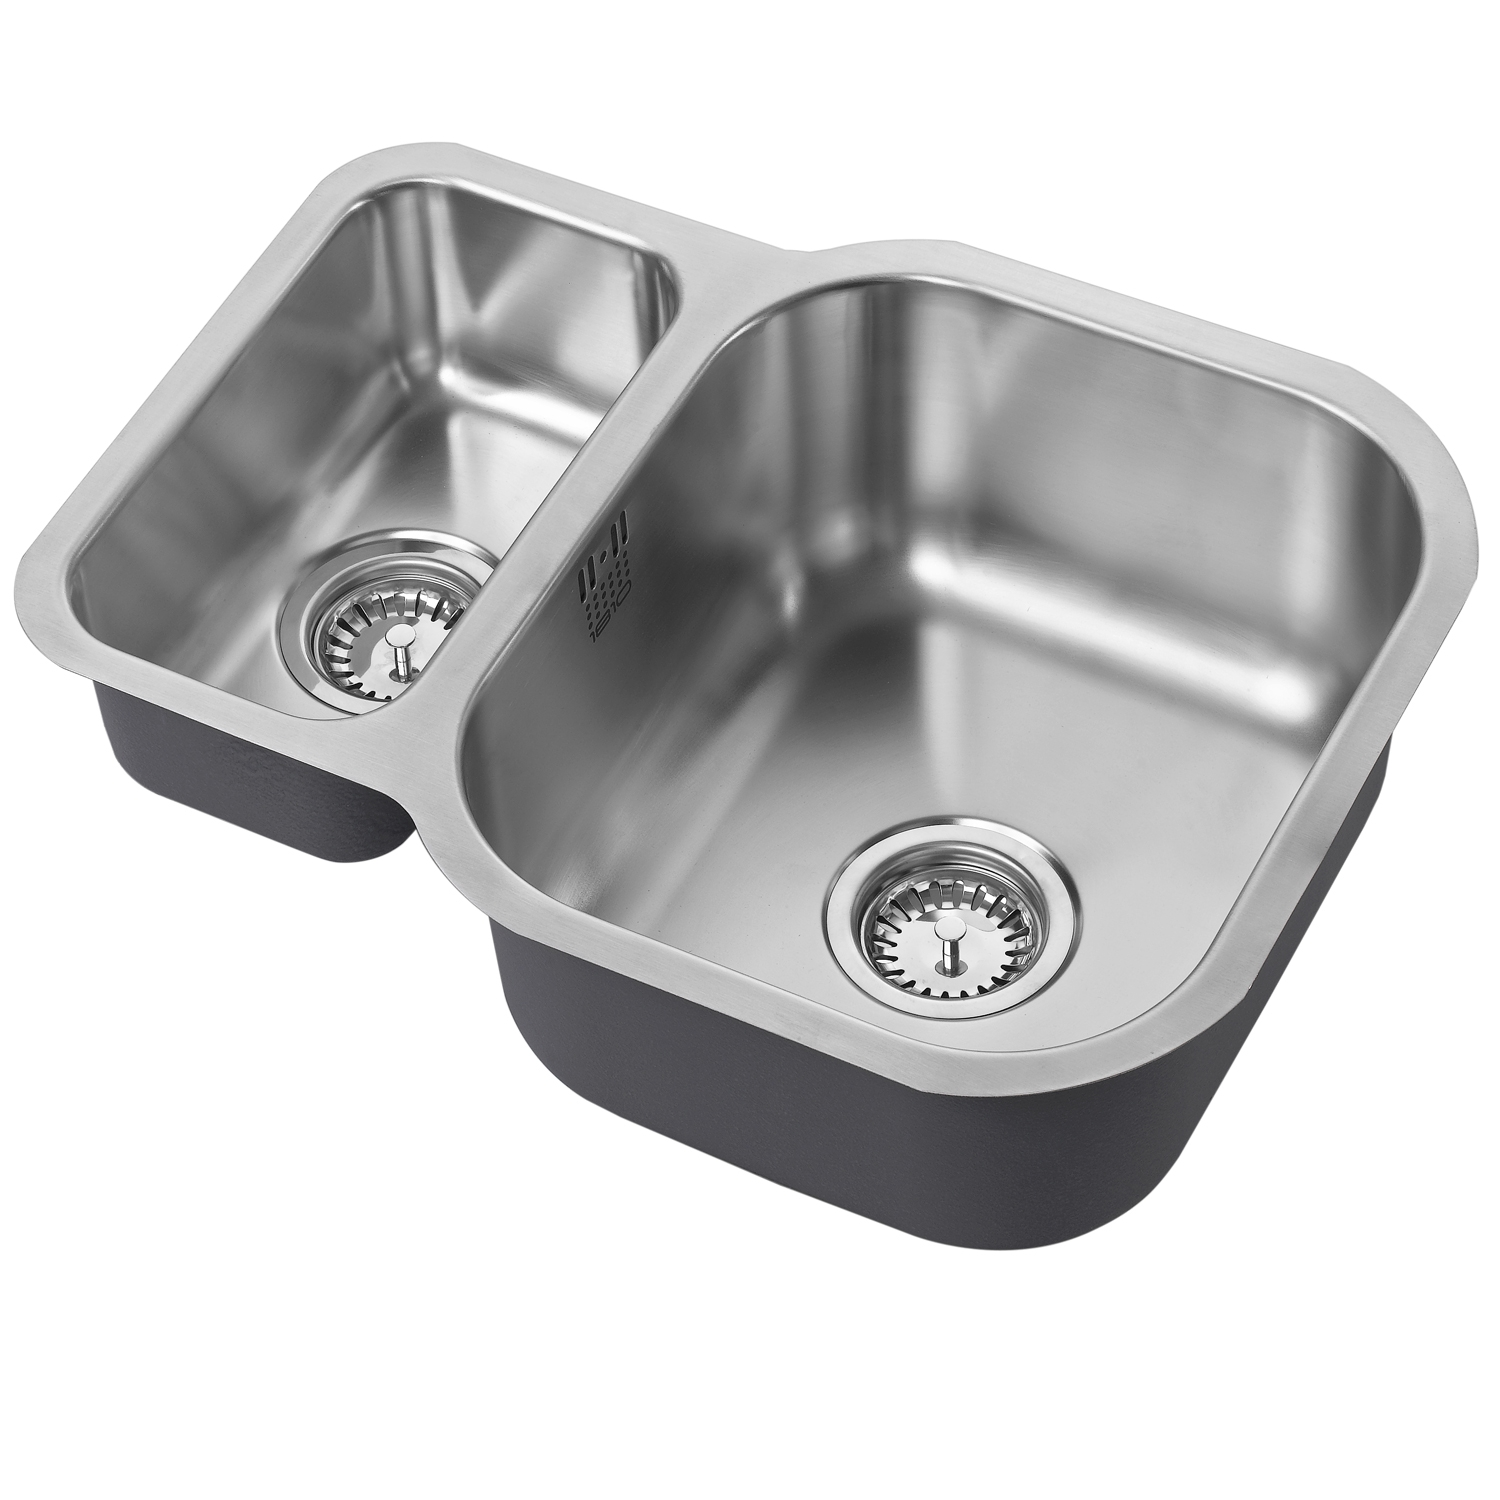 The 1810 Company Etroduo 589/450U 1.5 Bowl Kitchen Sink - Reversible